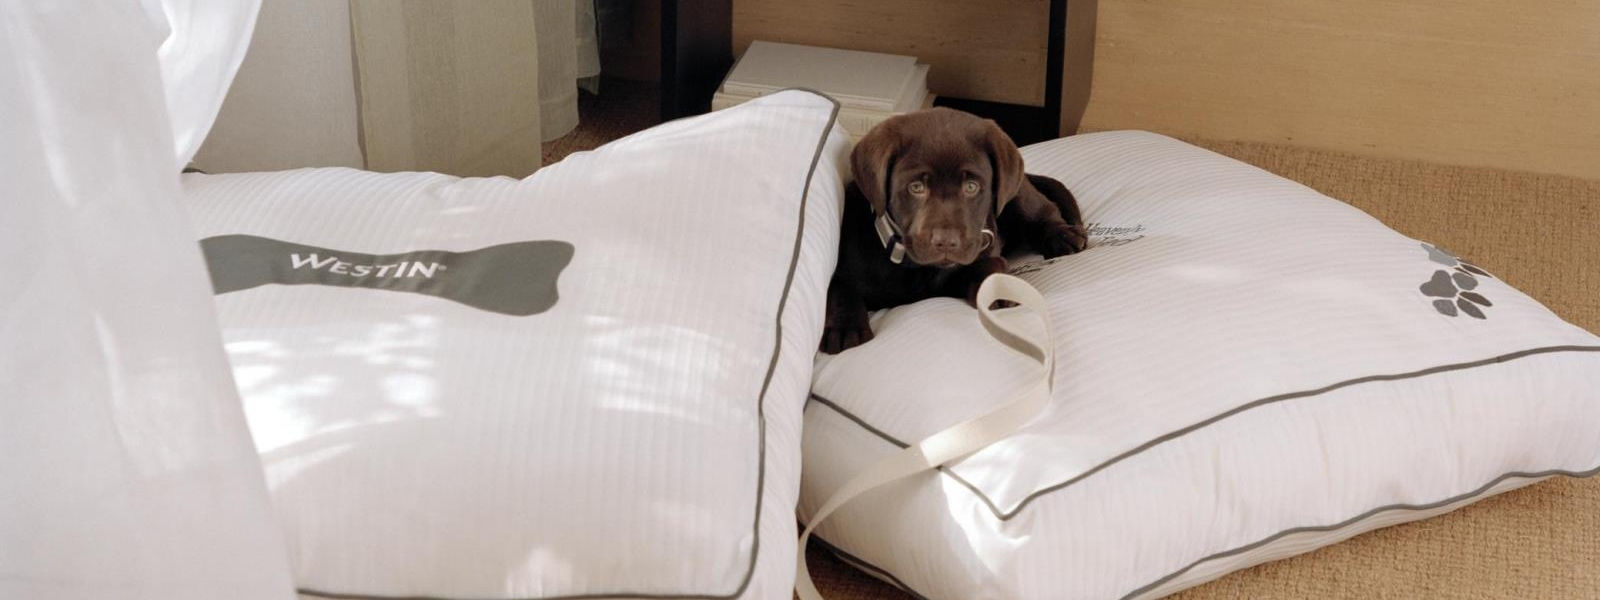 pet friendly hotels in orange county - westin heavenly dog bed